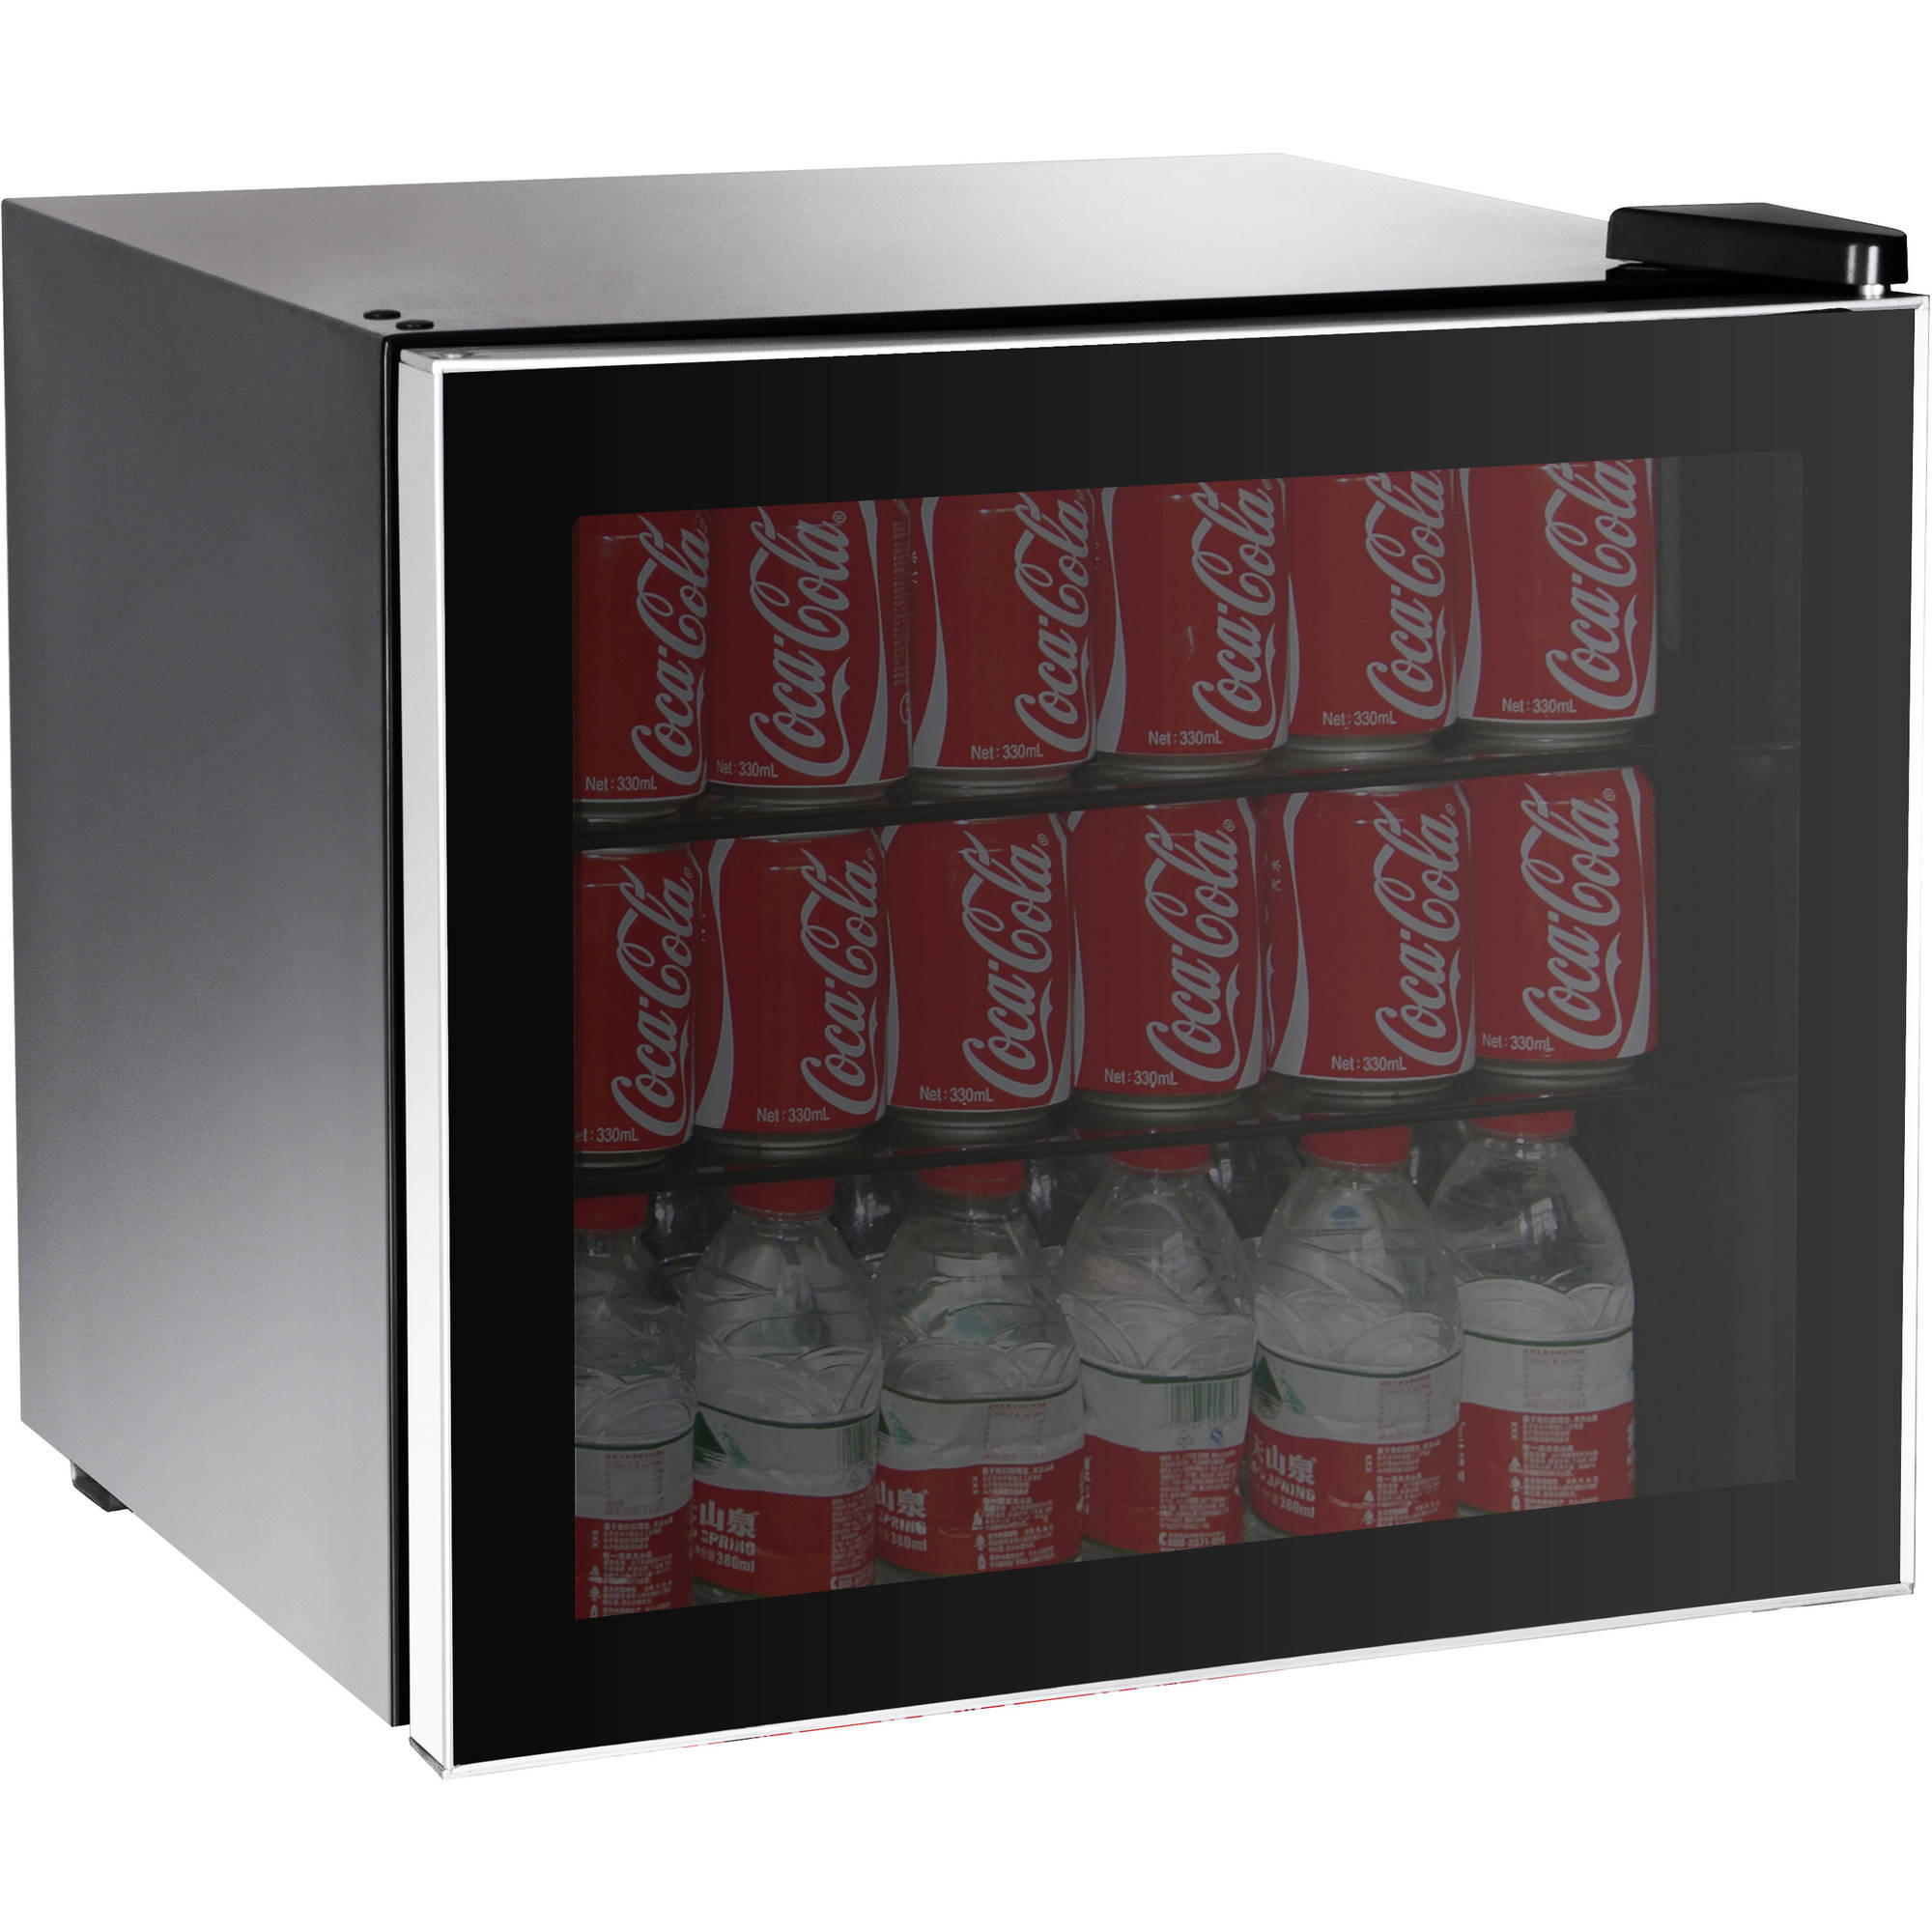 Igloo 70-Can or 14-Bottle Adjustable Beverage Center with Silver Trim by CURTIS INTERNATIONAL LTD